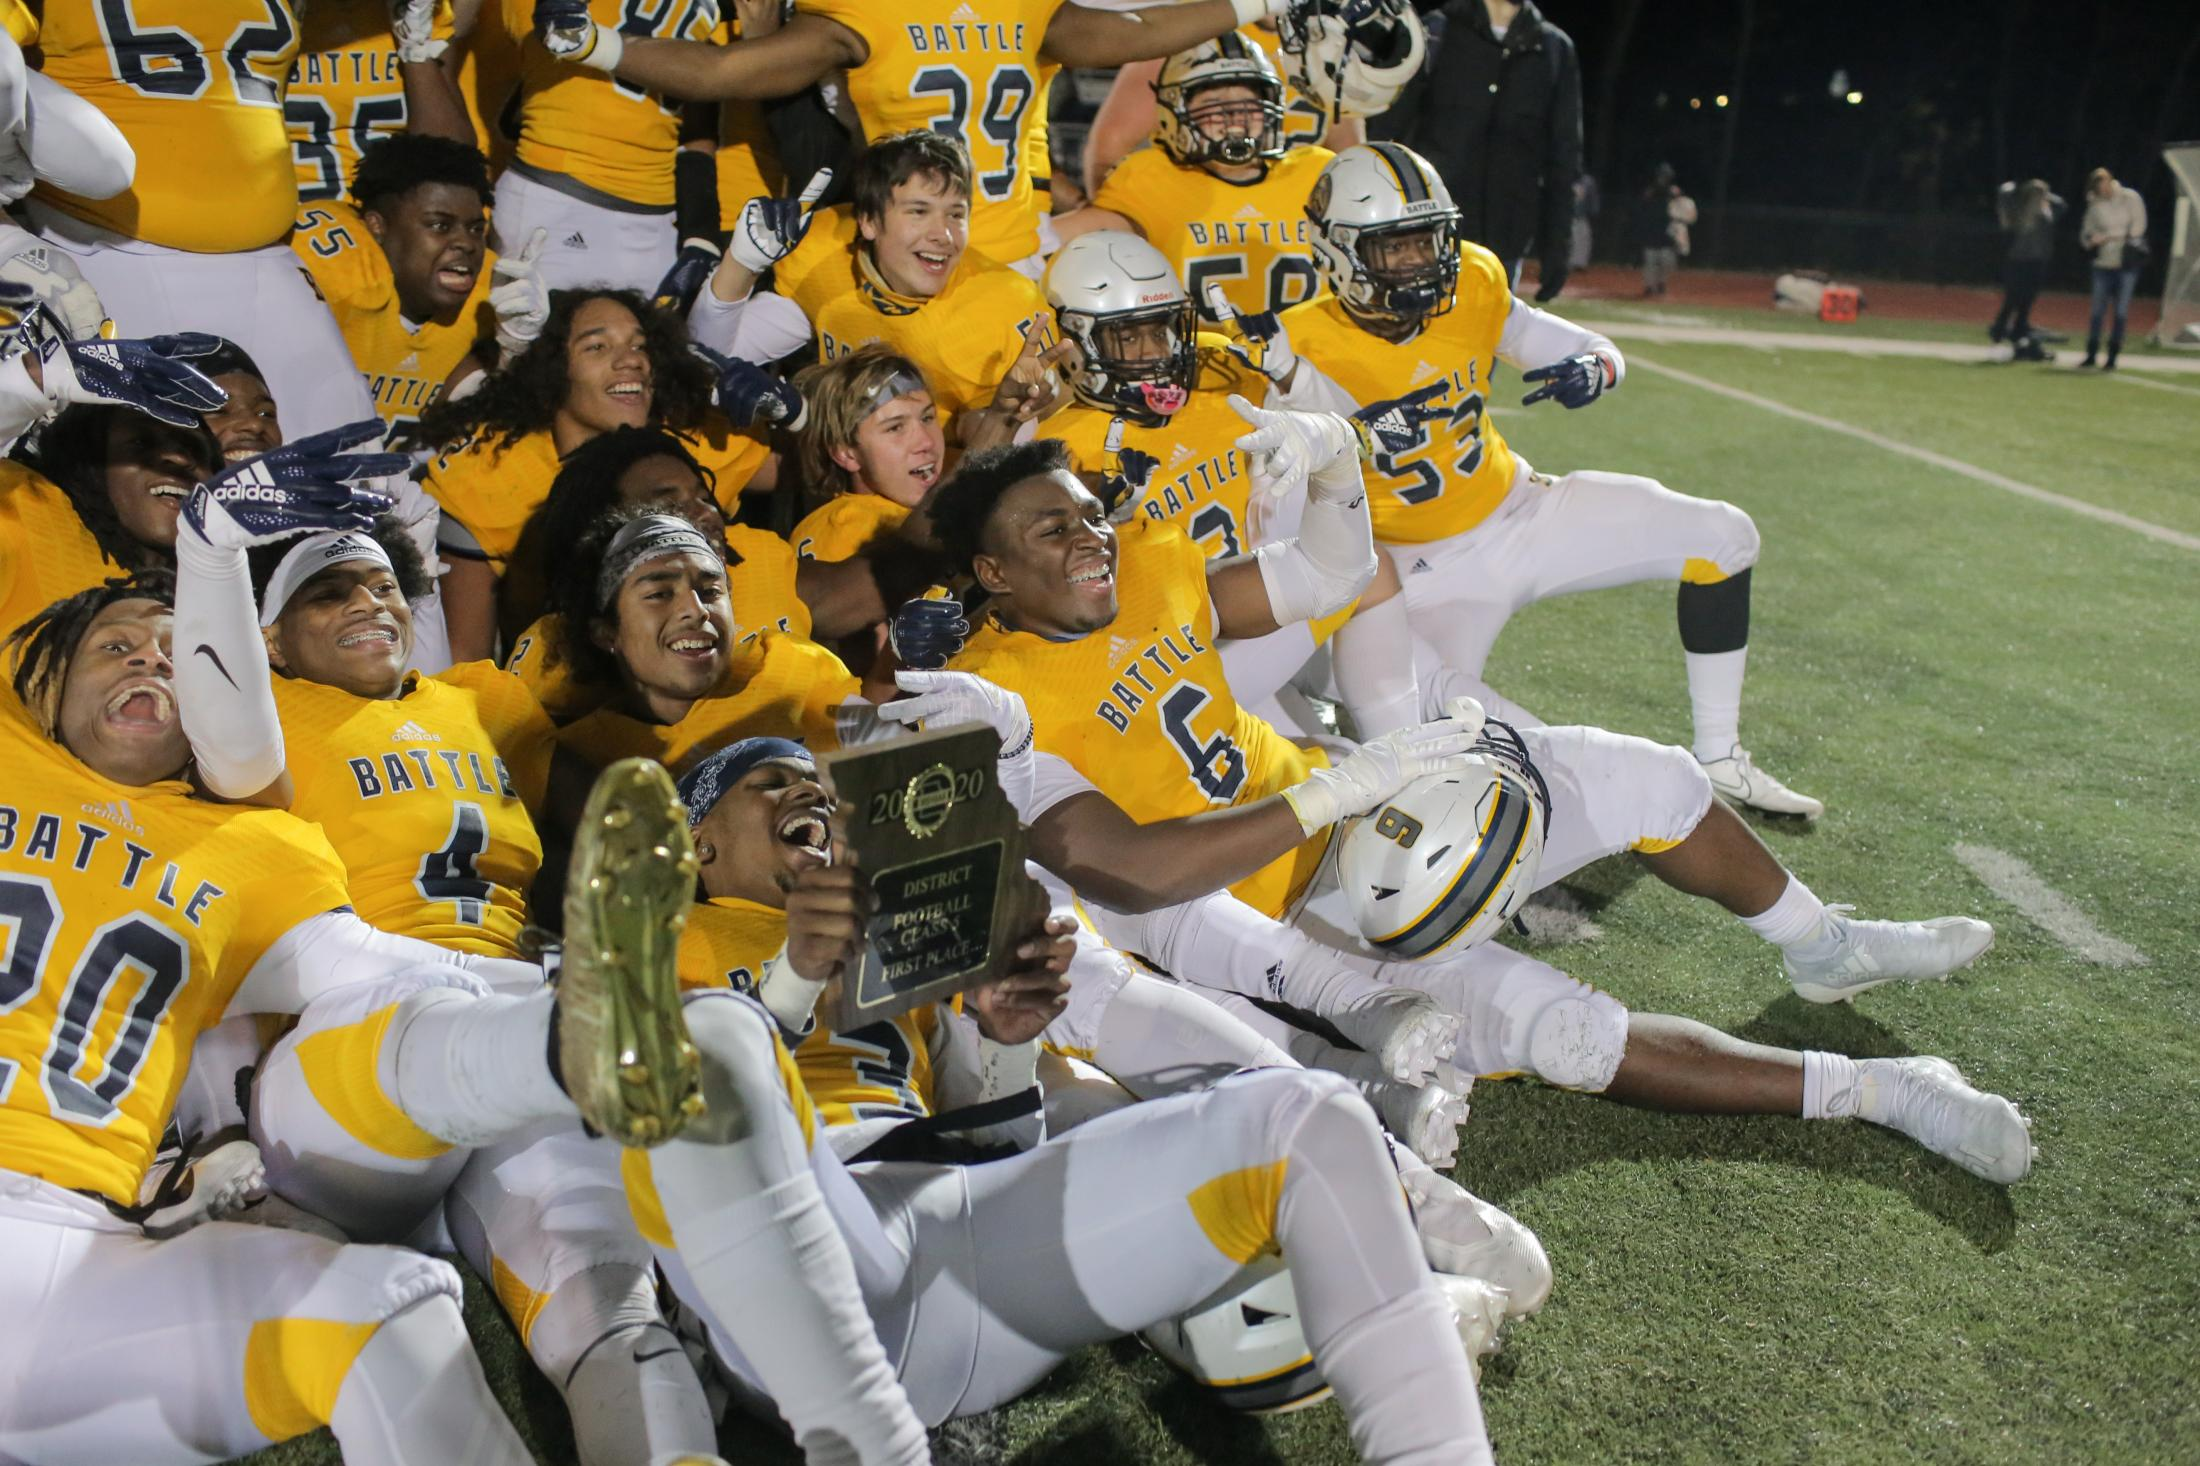 The Battle High School football team celebrates beating Washington High School and poses for photos with their Class 5 District 4 championship trophy on November 13, 2020, in Washington, MO.